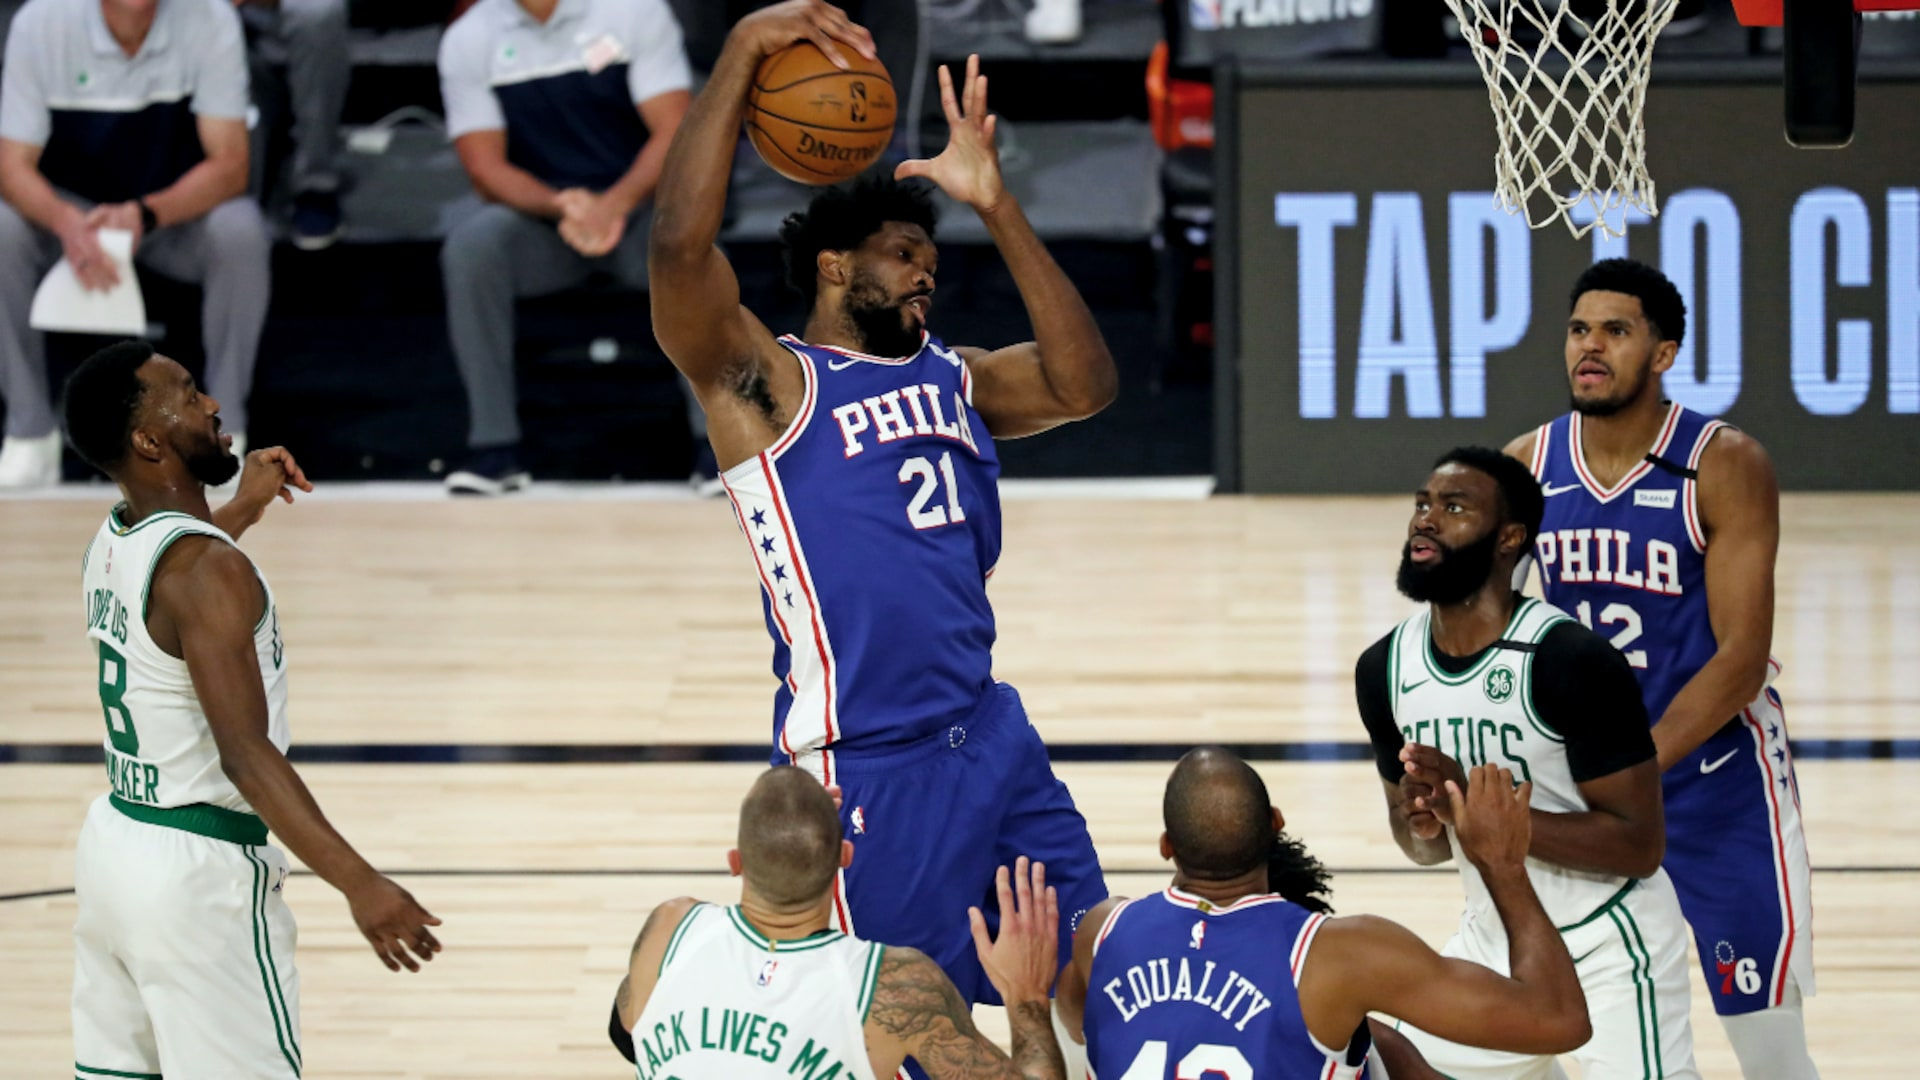 Once poised for success, 76ers would find ambitions smoldering if Celtics sweep